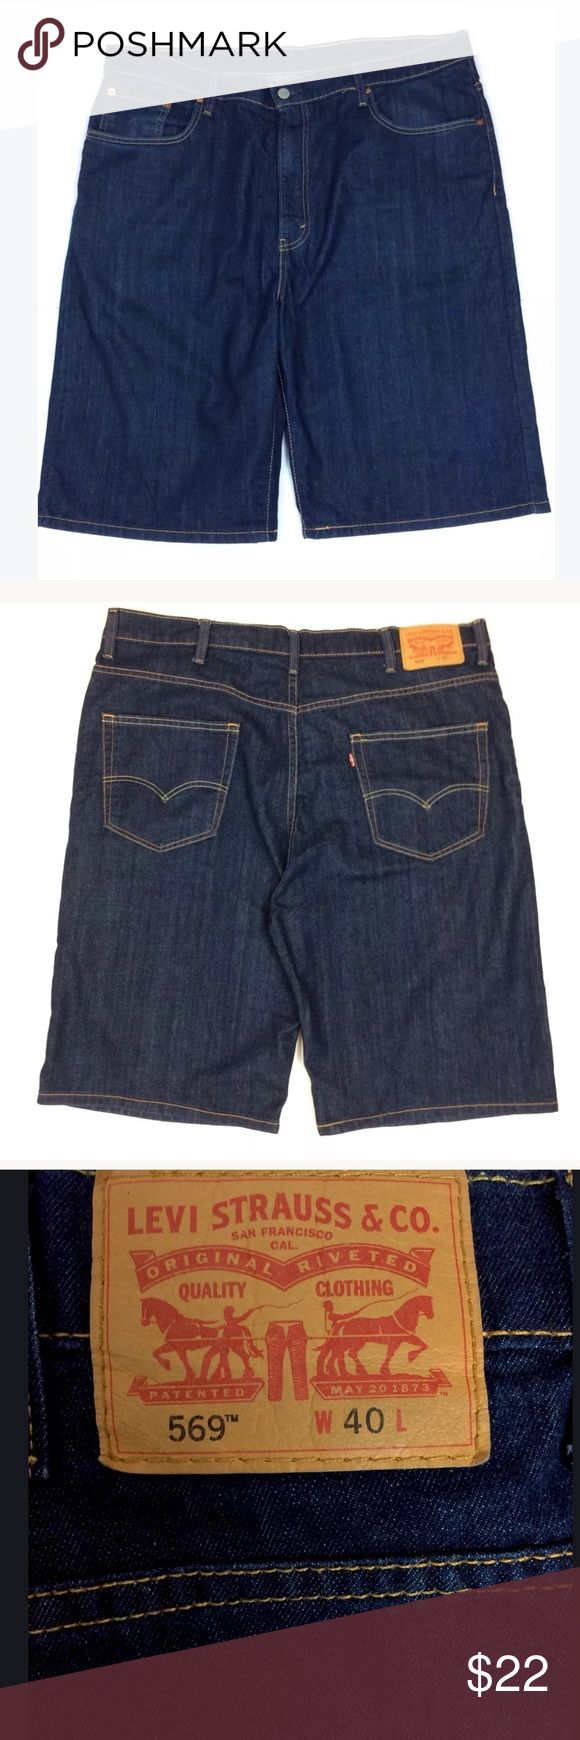 """🔥Men's Levi's 569 Denim Shorts Dark Wash 40 Waist Men's Levi's 569 Denim Shorts  Dark Wash  Waist: 40""""  Inseam: 11""""  Rise: 13.5""""  Length: 26"""" waist to bottom  Color: Blue  3 front pockets and 2 rear pockets  78% Cotton, 16% Polyester, 2% Elastane  The shorts are in good condition. Thank you for viewing this listing! Levi's Shorts Jean Shorts"""